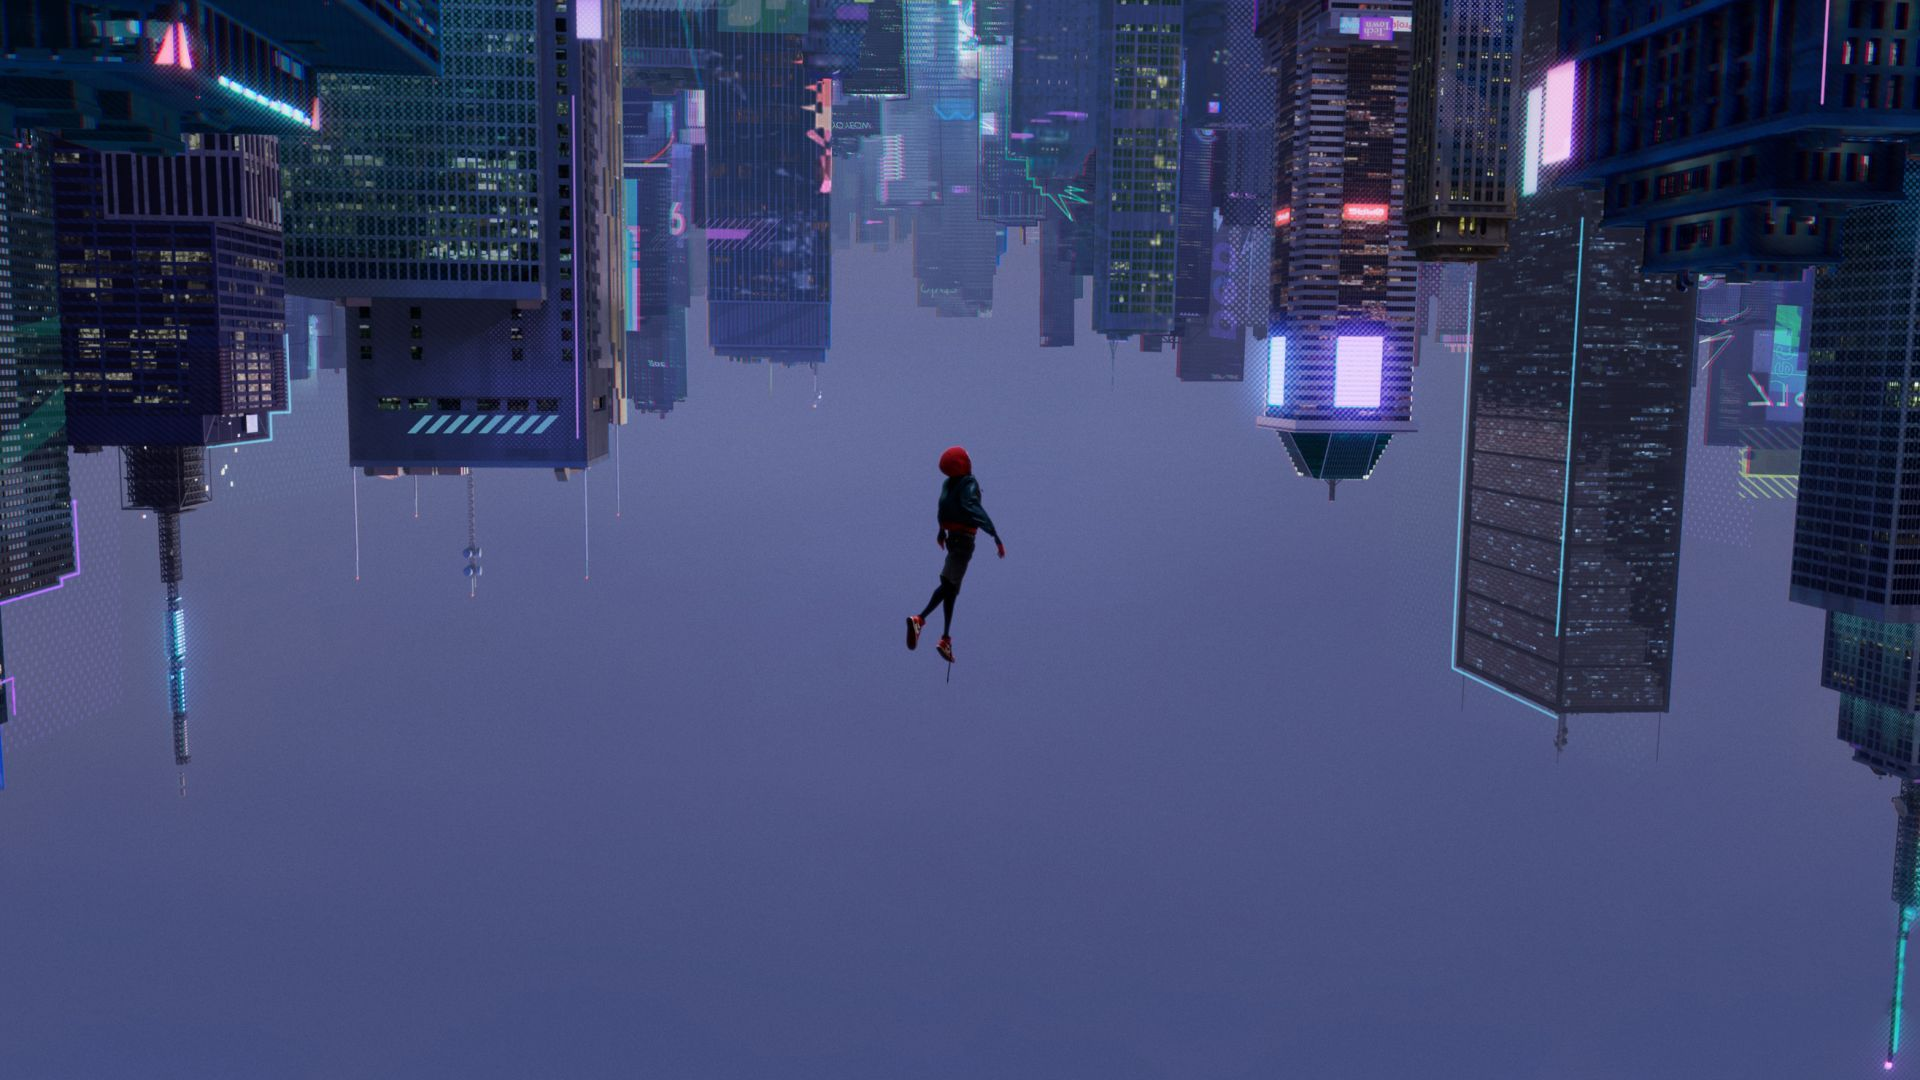 Spider Man Into The Spider Verse 4k Horizontal Animated Spider Marvel Wallpaper Spider Verse